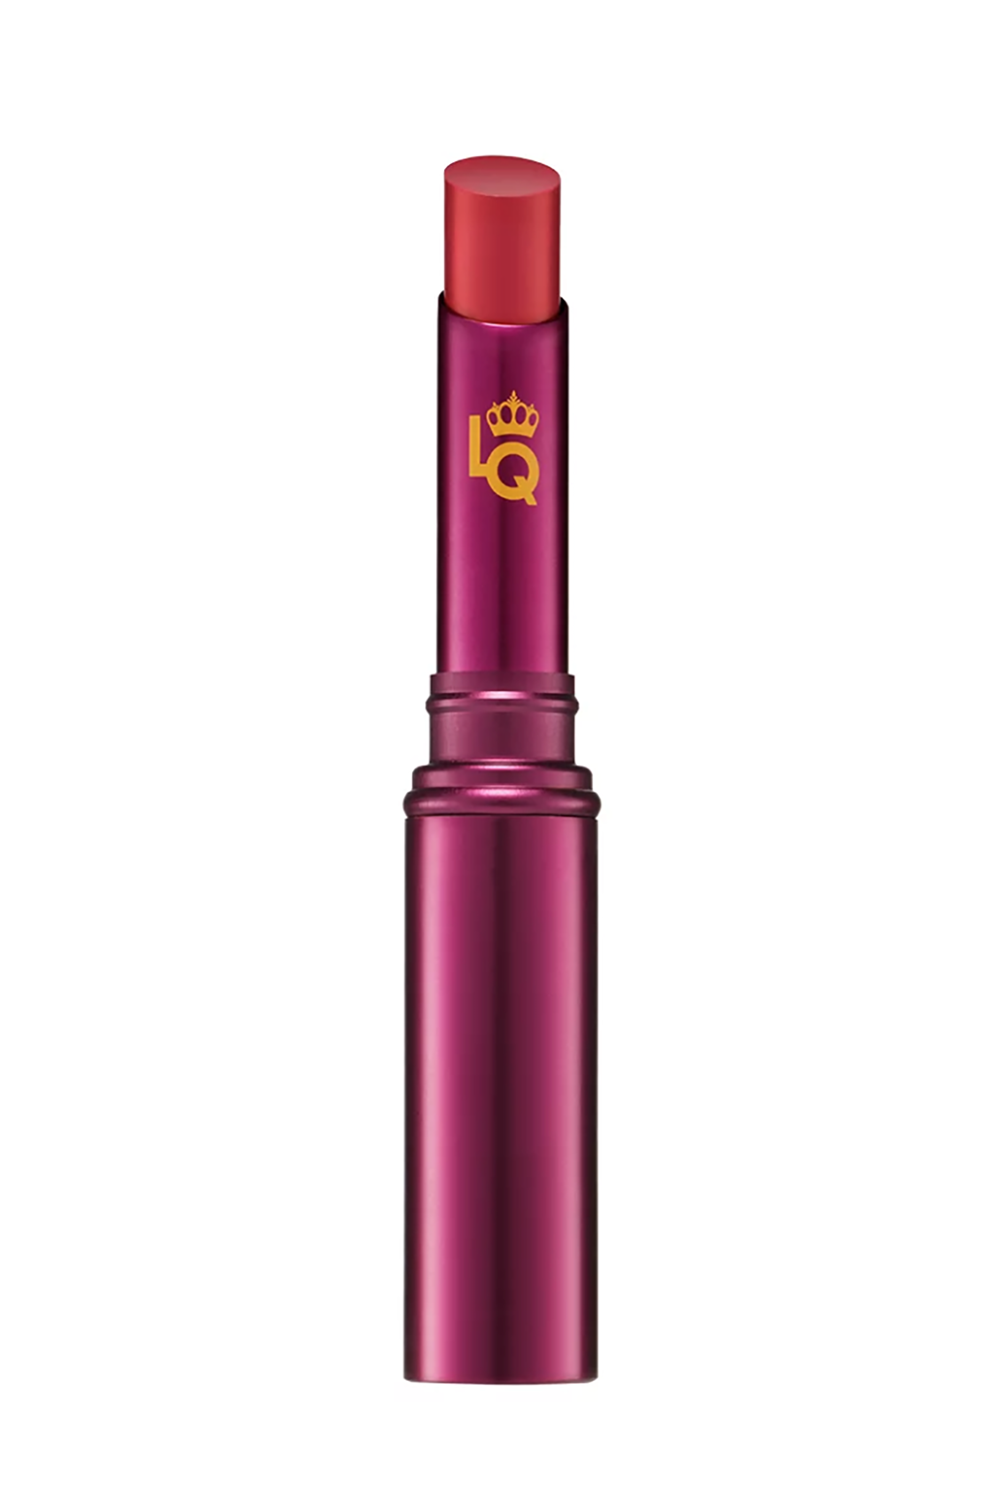 Blood-Red Lipstick Queen Intense Lipstick in Medieval, $24 SHOP IT No matter the season, a rich red will never do you wrong. Especially this one, which will coat your lips with an unapologetic dash of color.